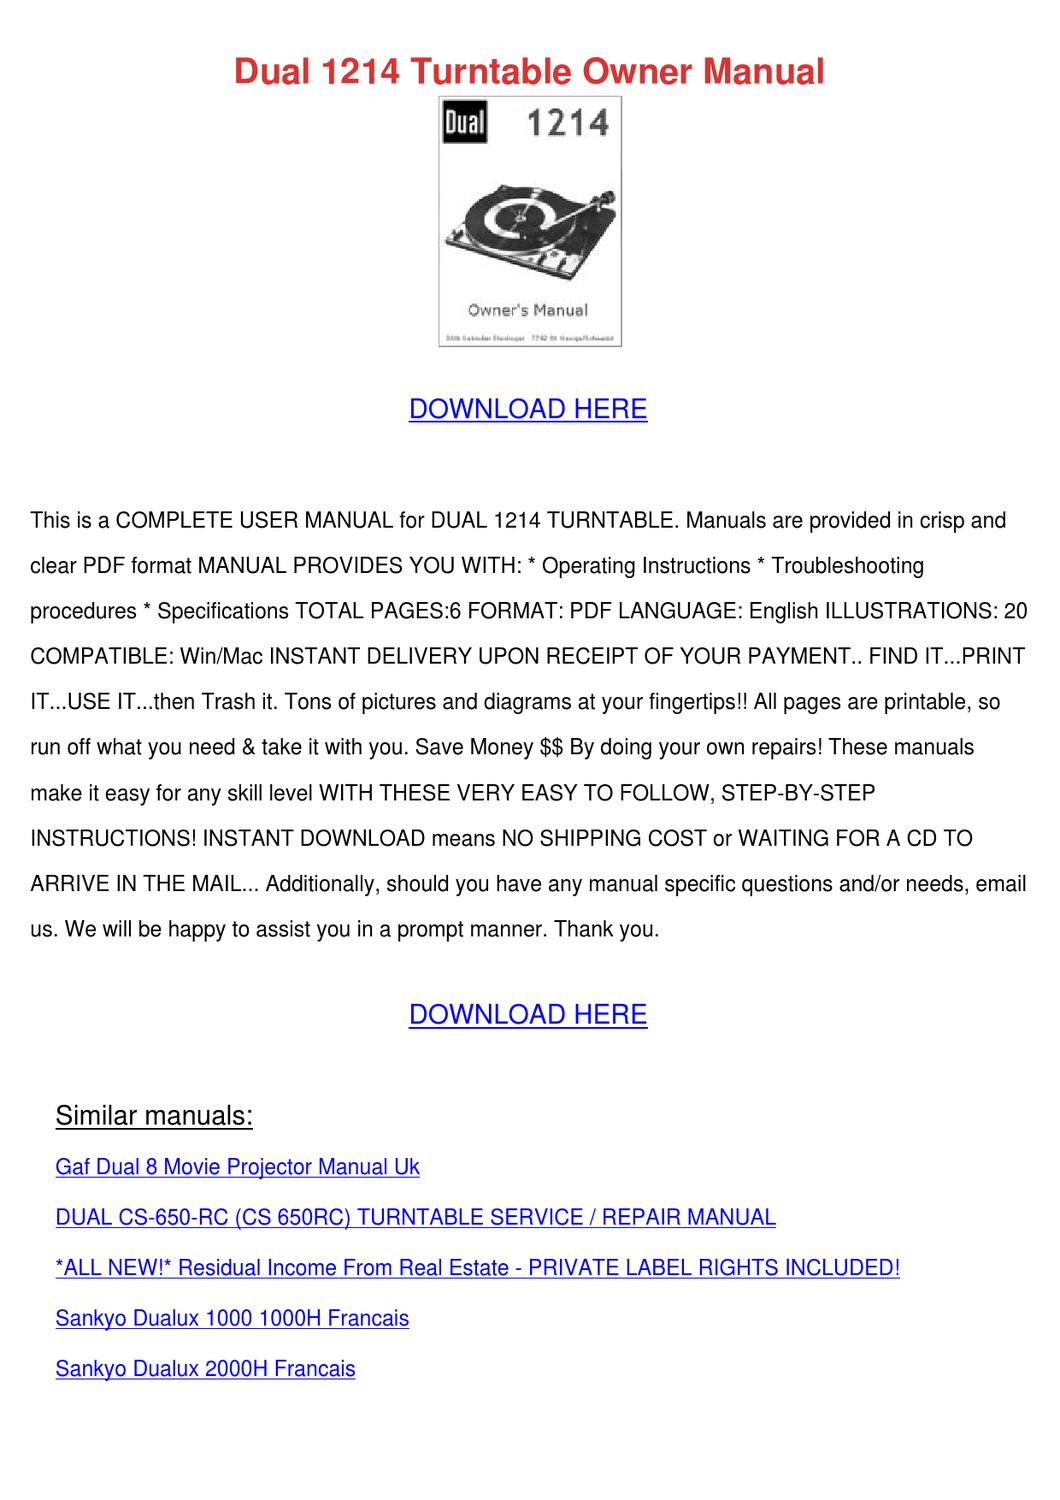 Dual 1214 Turntable Owner Manual by Maxie Chomka - issuu